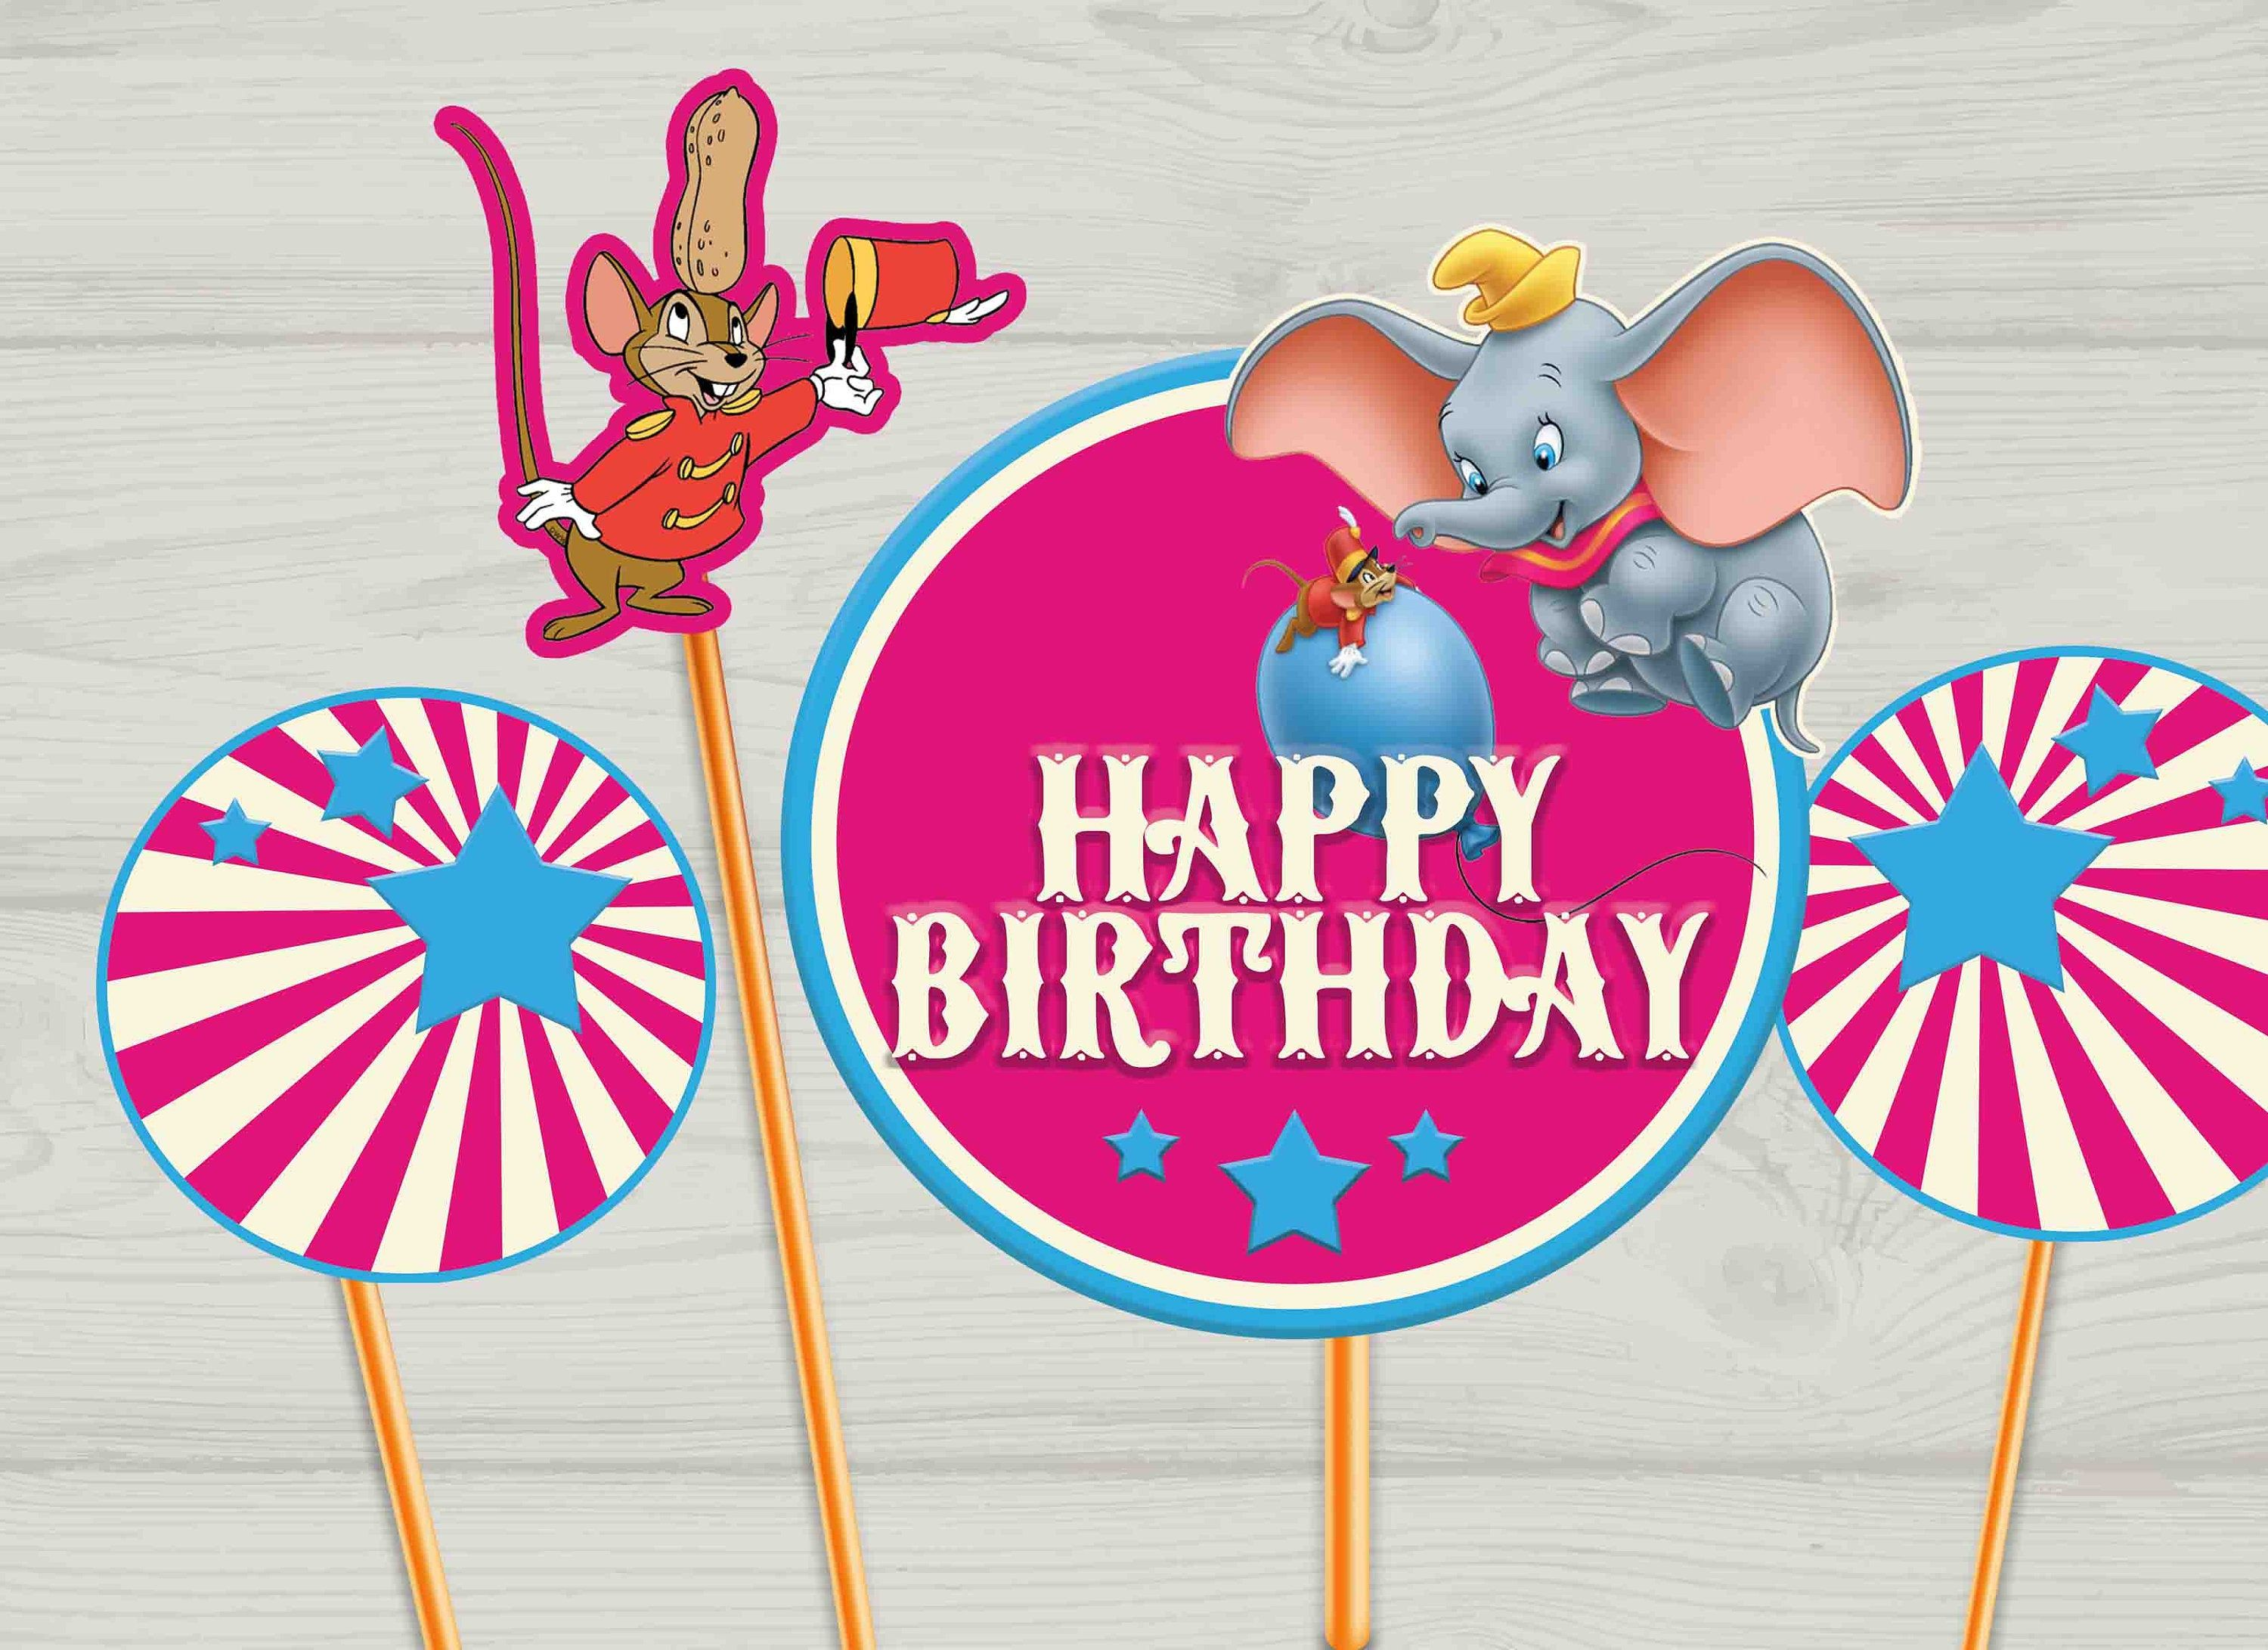 Dumbo Centerpieces Pink Dumbo Dumbo Birthday Dumbo Decorations Digital Files Small Centerpieces Large Centerpiece Design Personalized